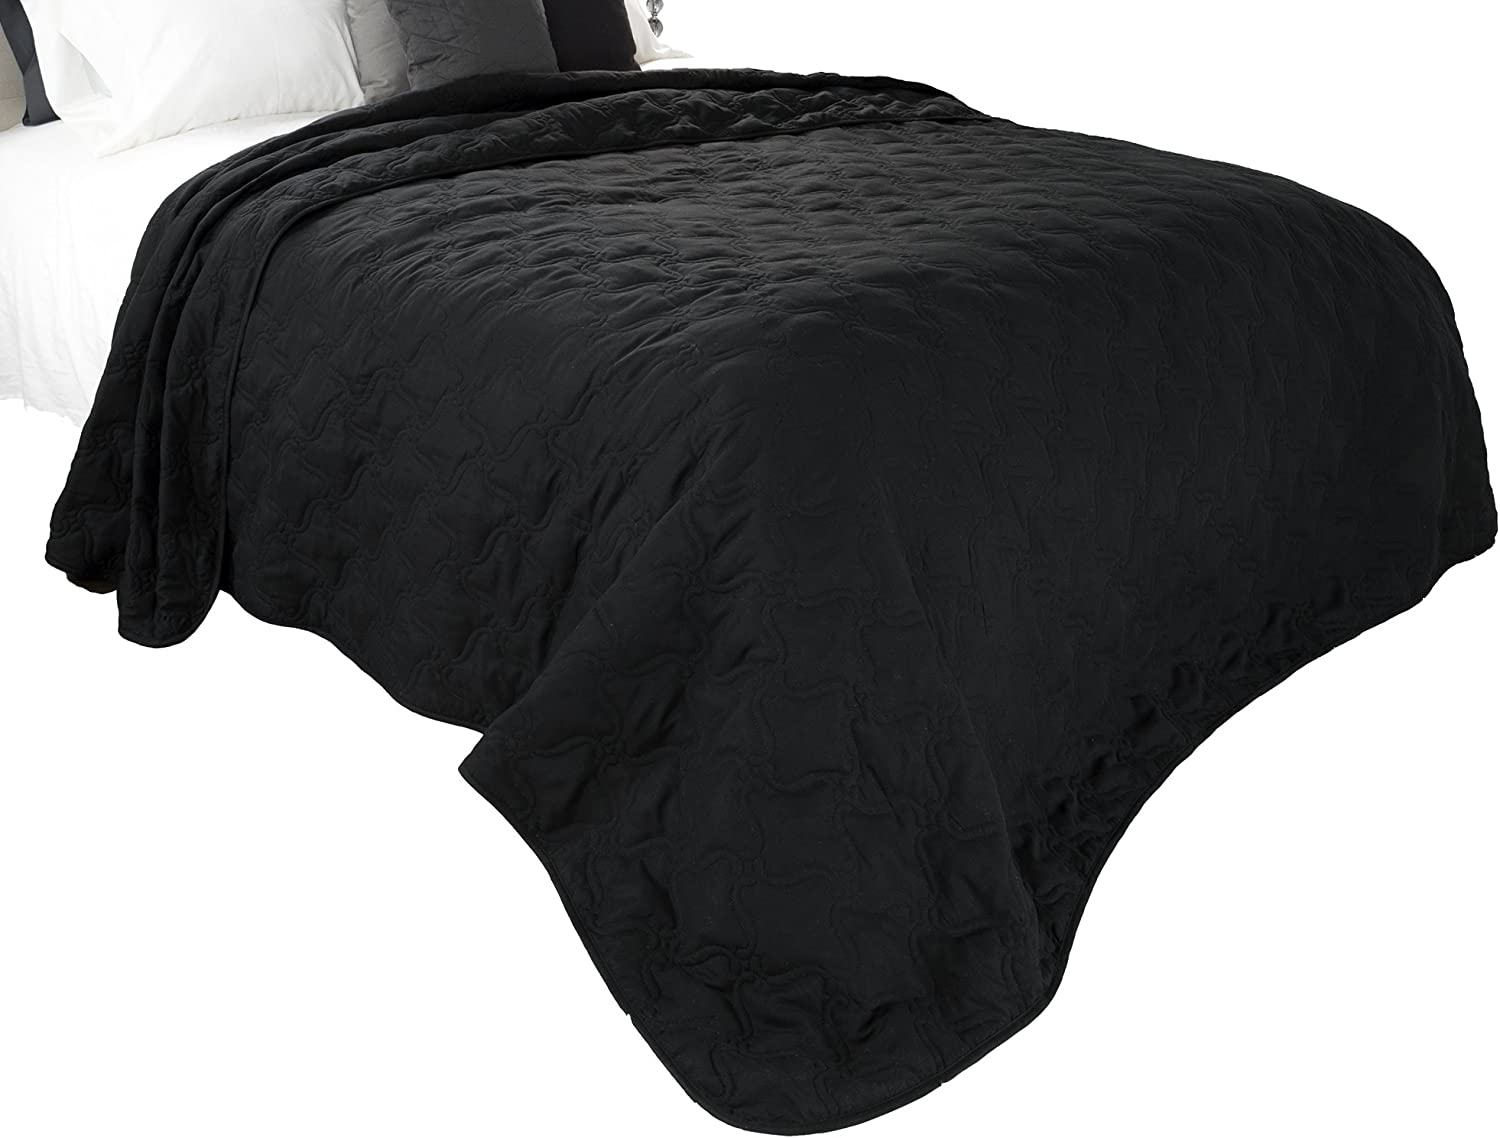 Solid Color Quilt by Lavish Home King - Black